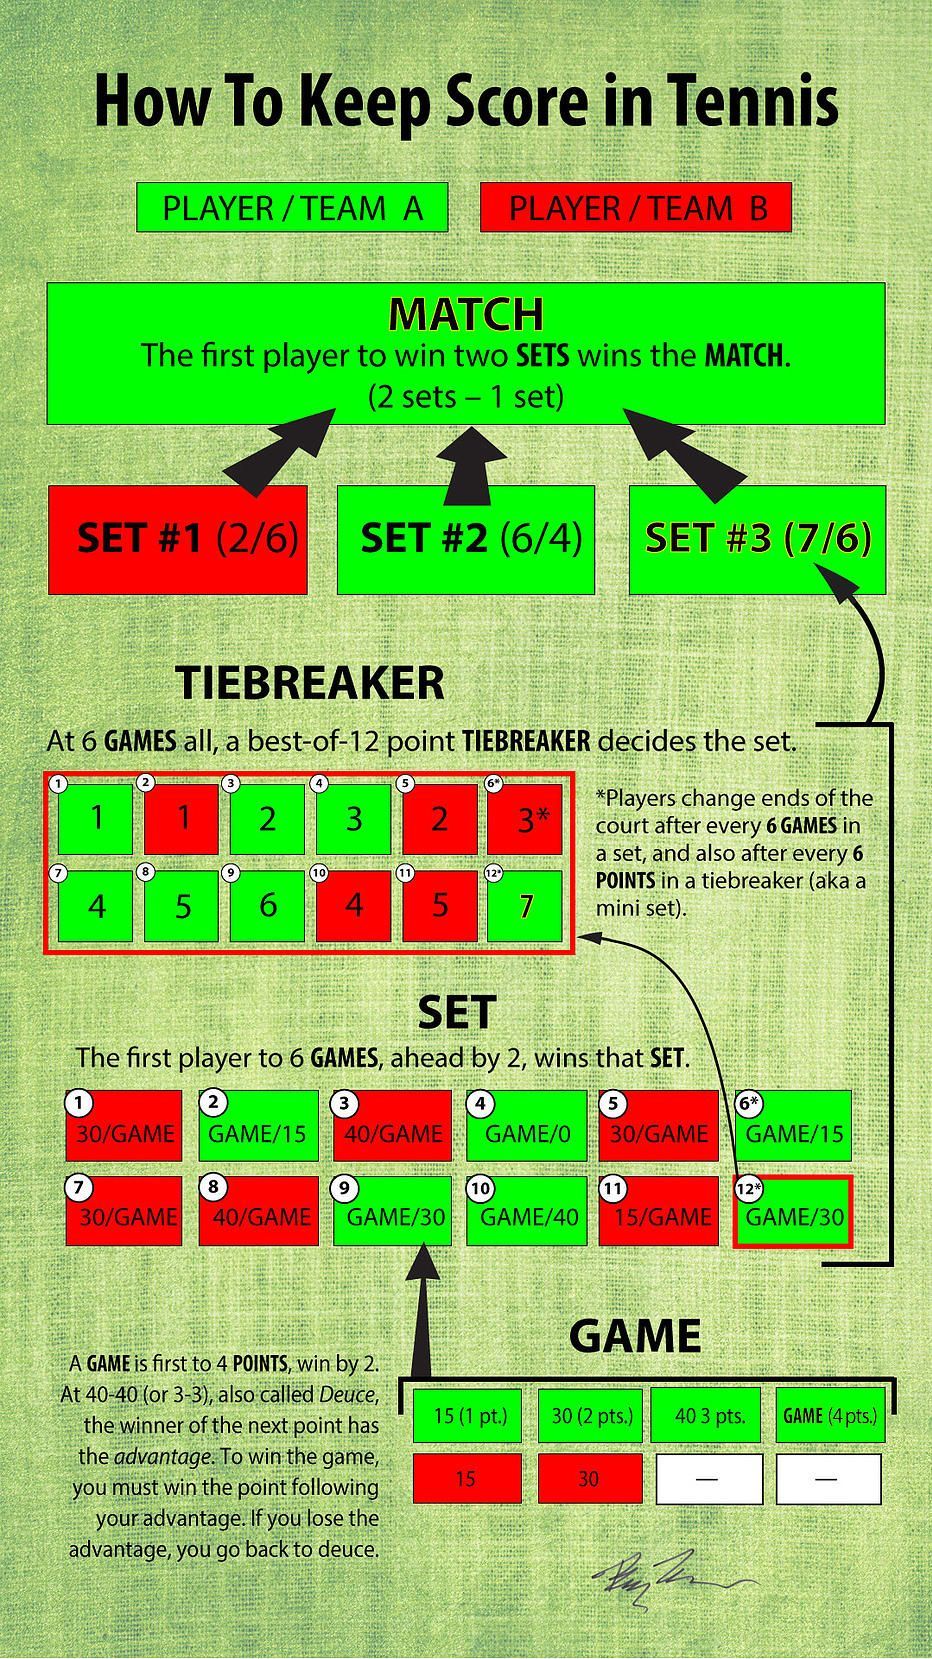 How To Keep Score In Tennis Infographic Tennis Drills Tennis Lessons Tennis Workout